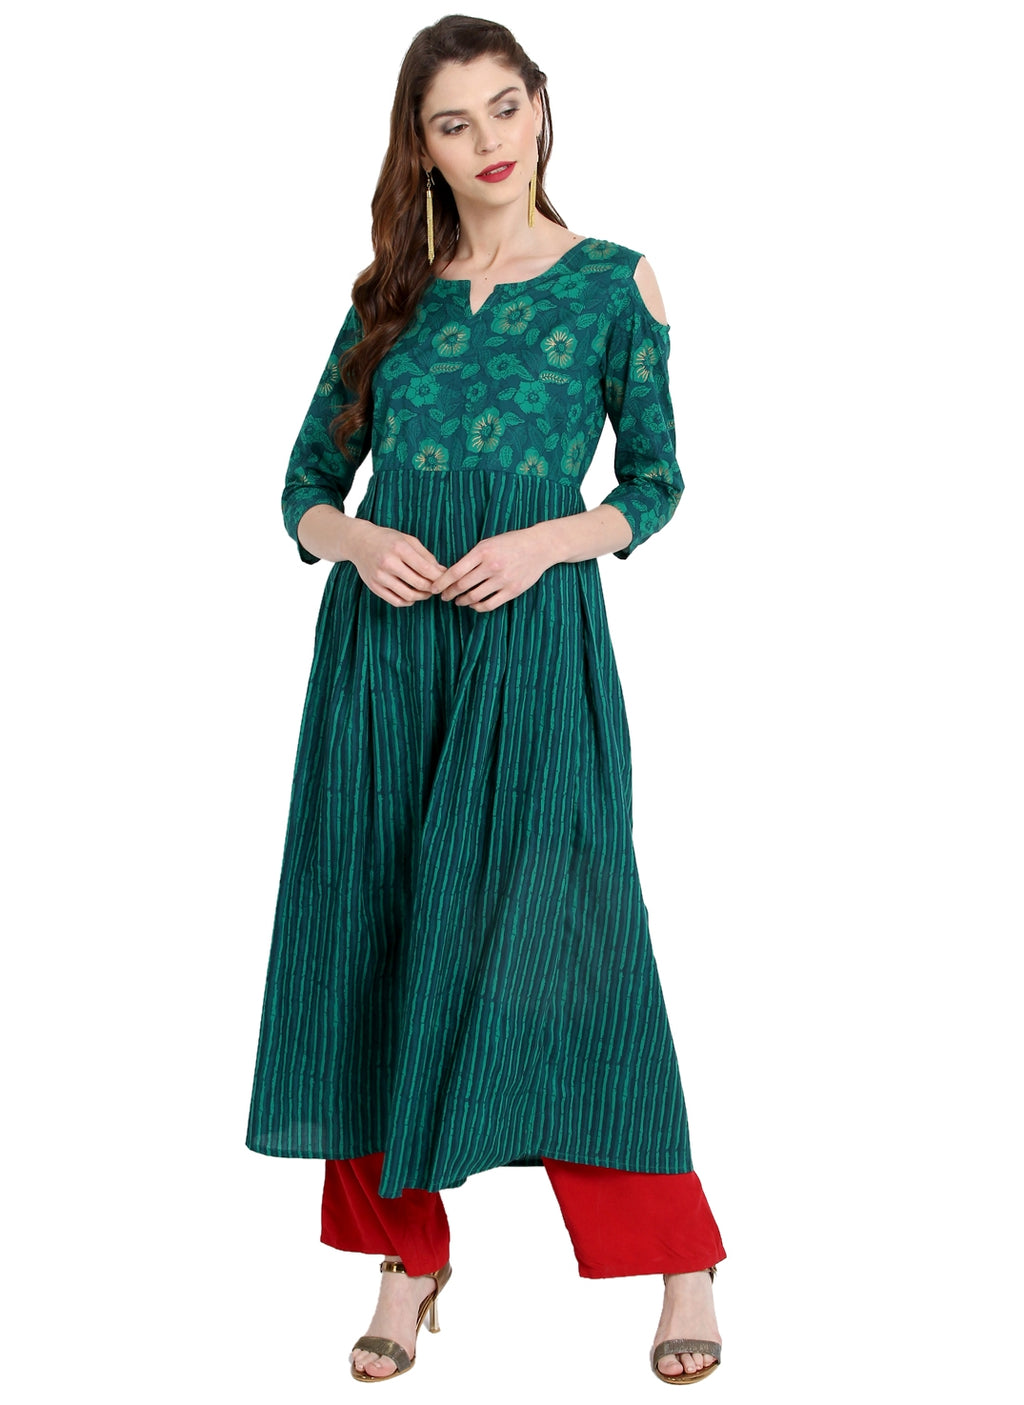 Green Color Cotton Readymade Party Wear Kurtis ( Sizes-36,38,40,42,44) Janasya Catlog SJ-10214